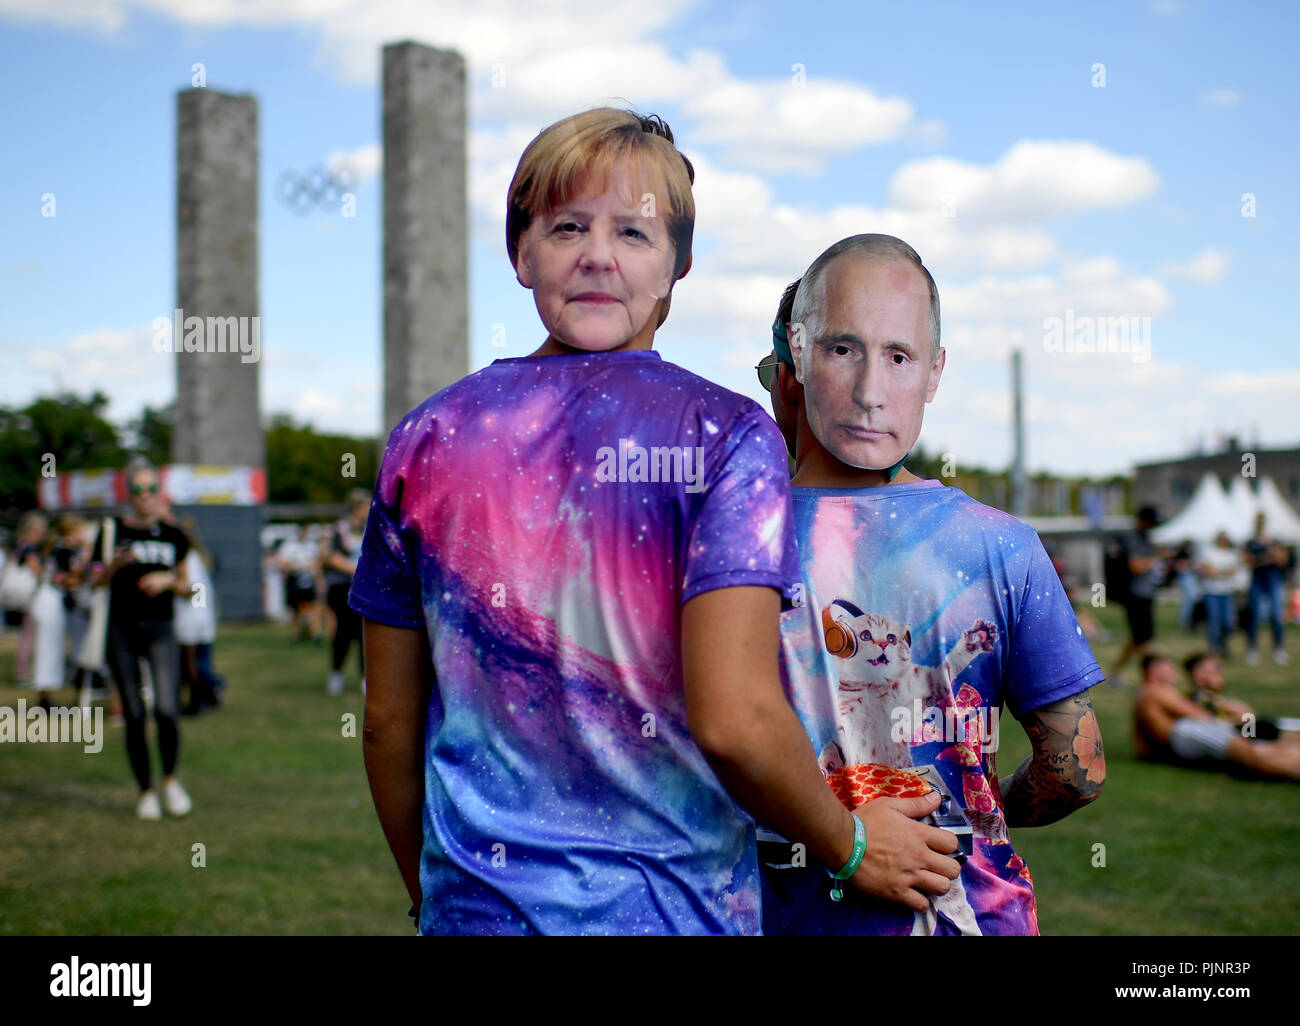 Berlin, Germany. 08th Sep, 2018. Visitors with masks by Merkel and Putin at the two-day music festival Lollapalooza on the grounds of the Olympic Park. Credit: Britta Pedersen/dpa/Alamy Live News - Stock Image